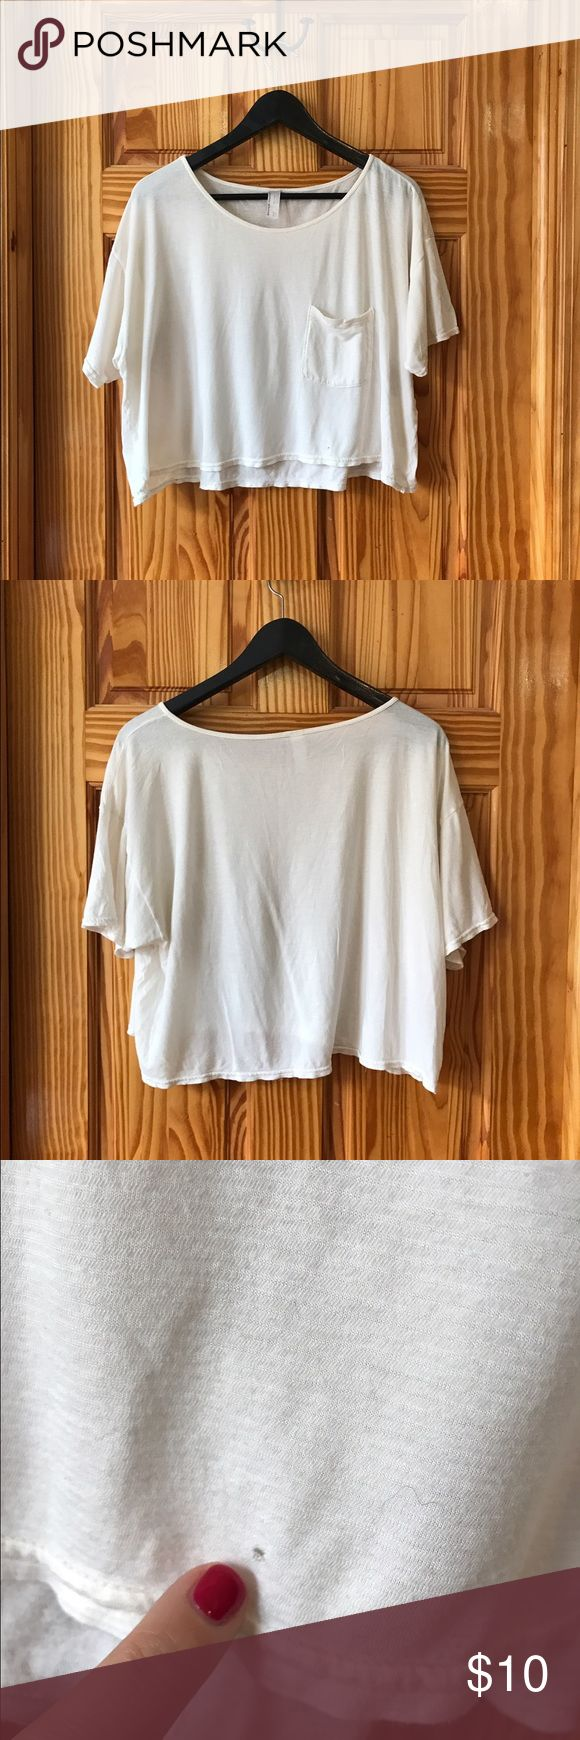 American Apparel flowy cream crop top American Apparel flowy cream crop top, one size. Lightly worn, there is a barely visible pull (pictured) on the front hem of the shirt. American Apparel Tops Tees - Short Sleeve